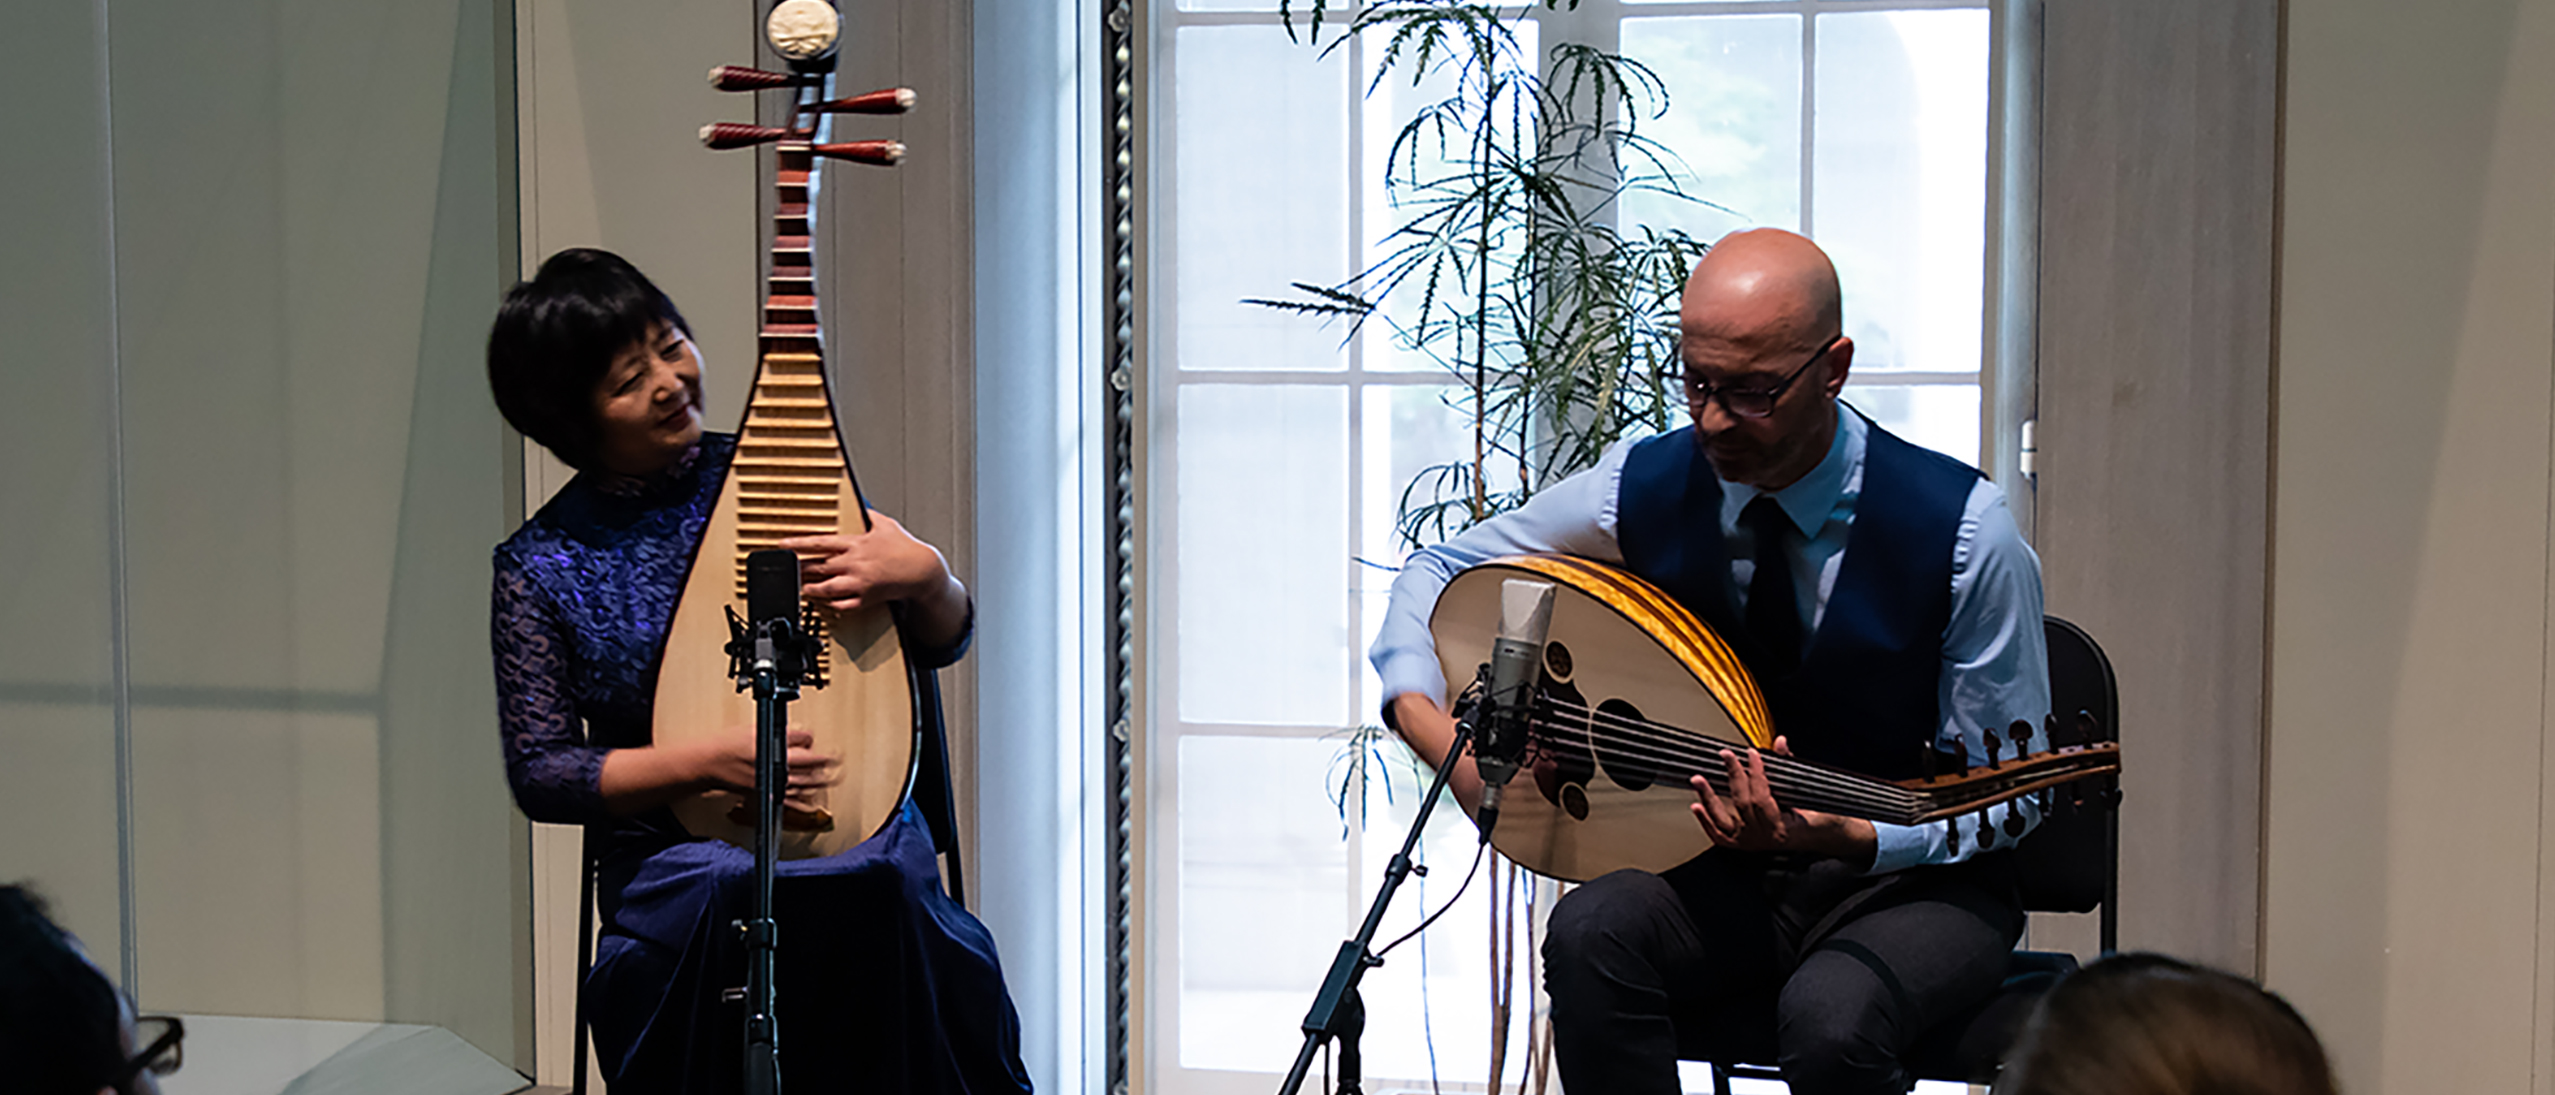 Gao Hong and Issam Rafea perform on the Chinese and Arab lutes on September 14, 2019.